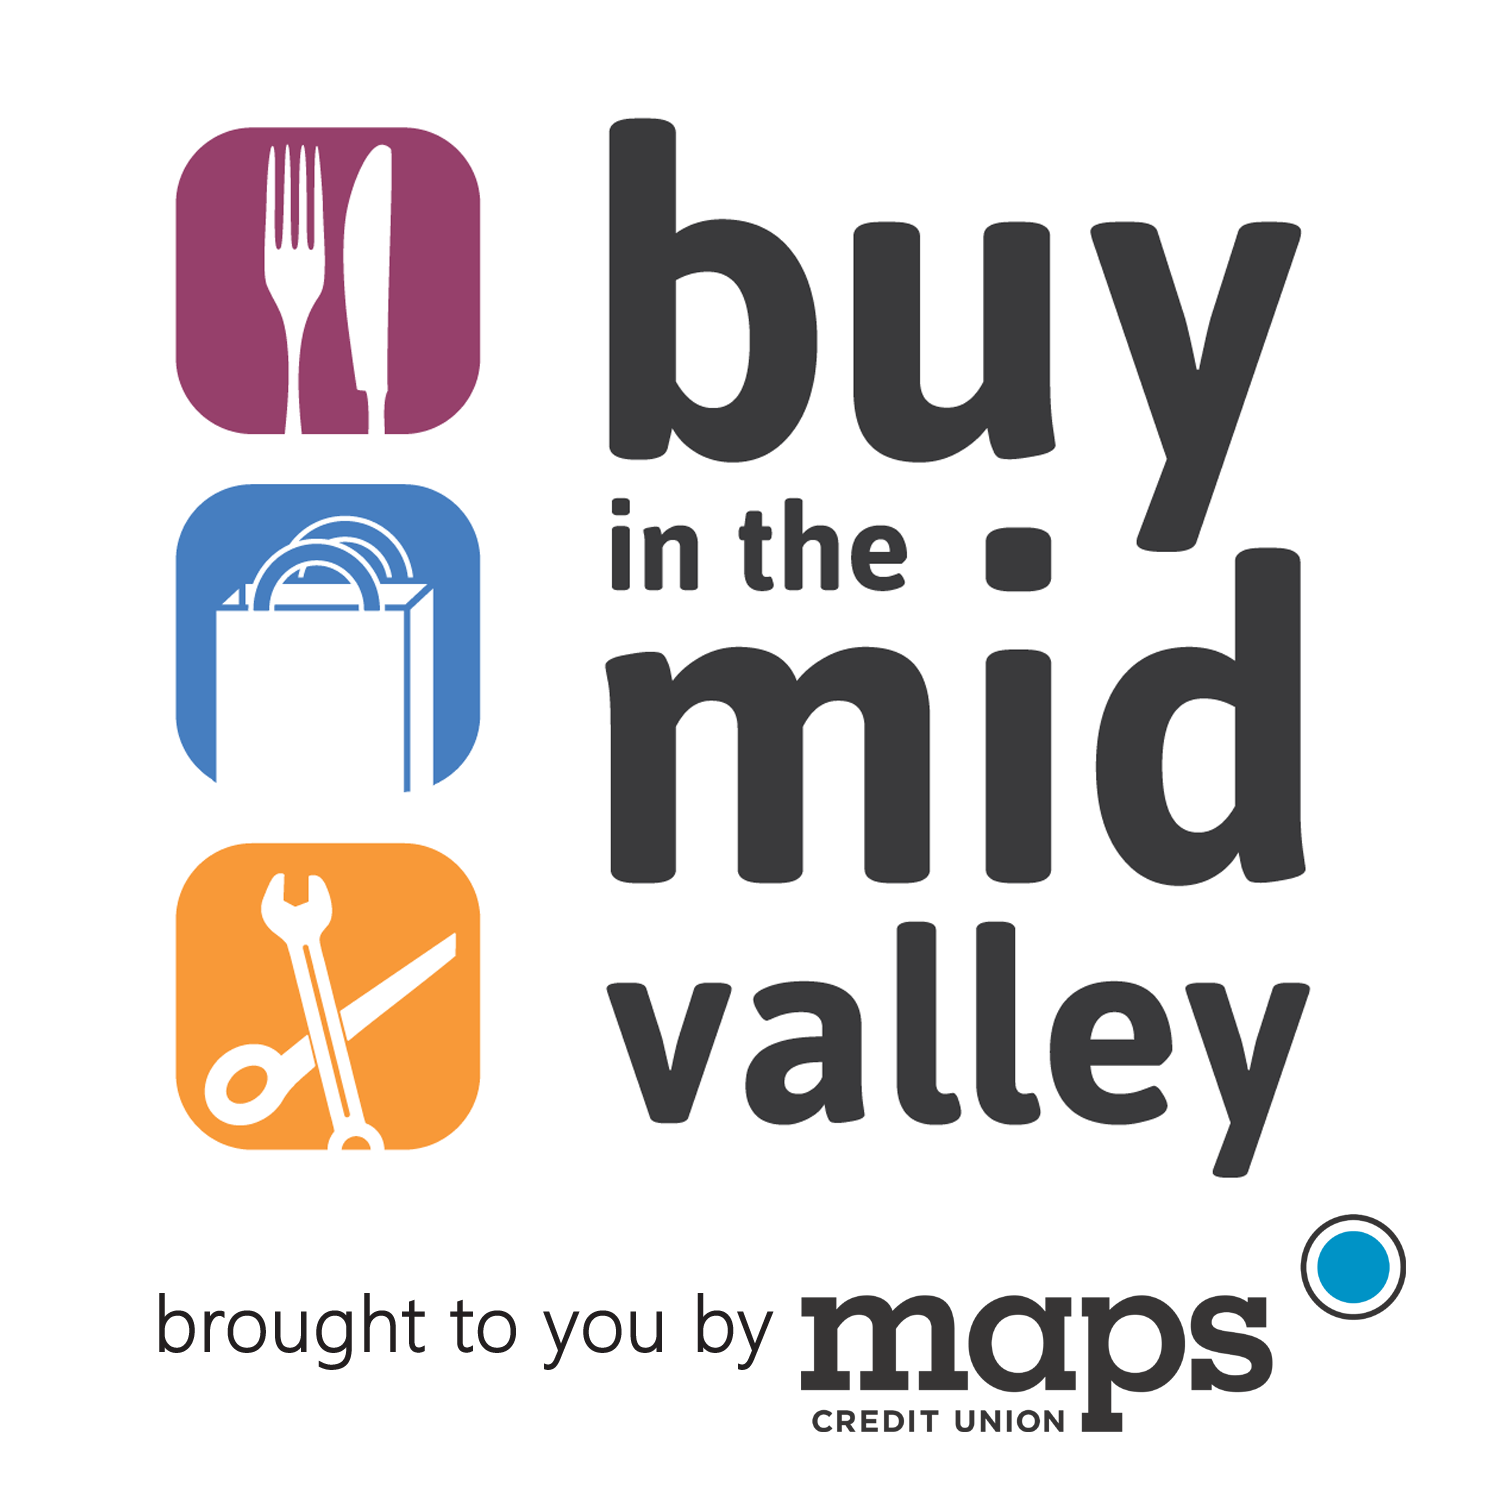 Buy in the MidValley logo